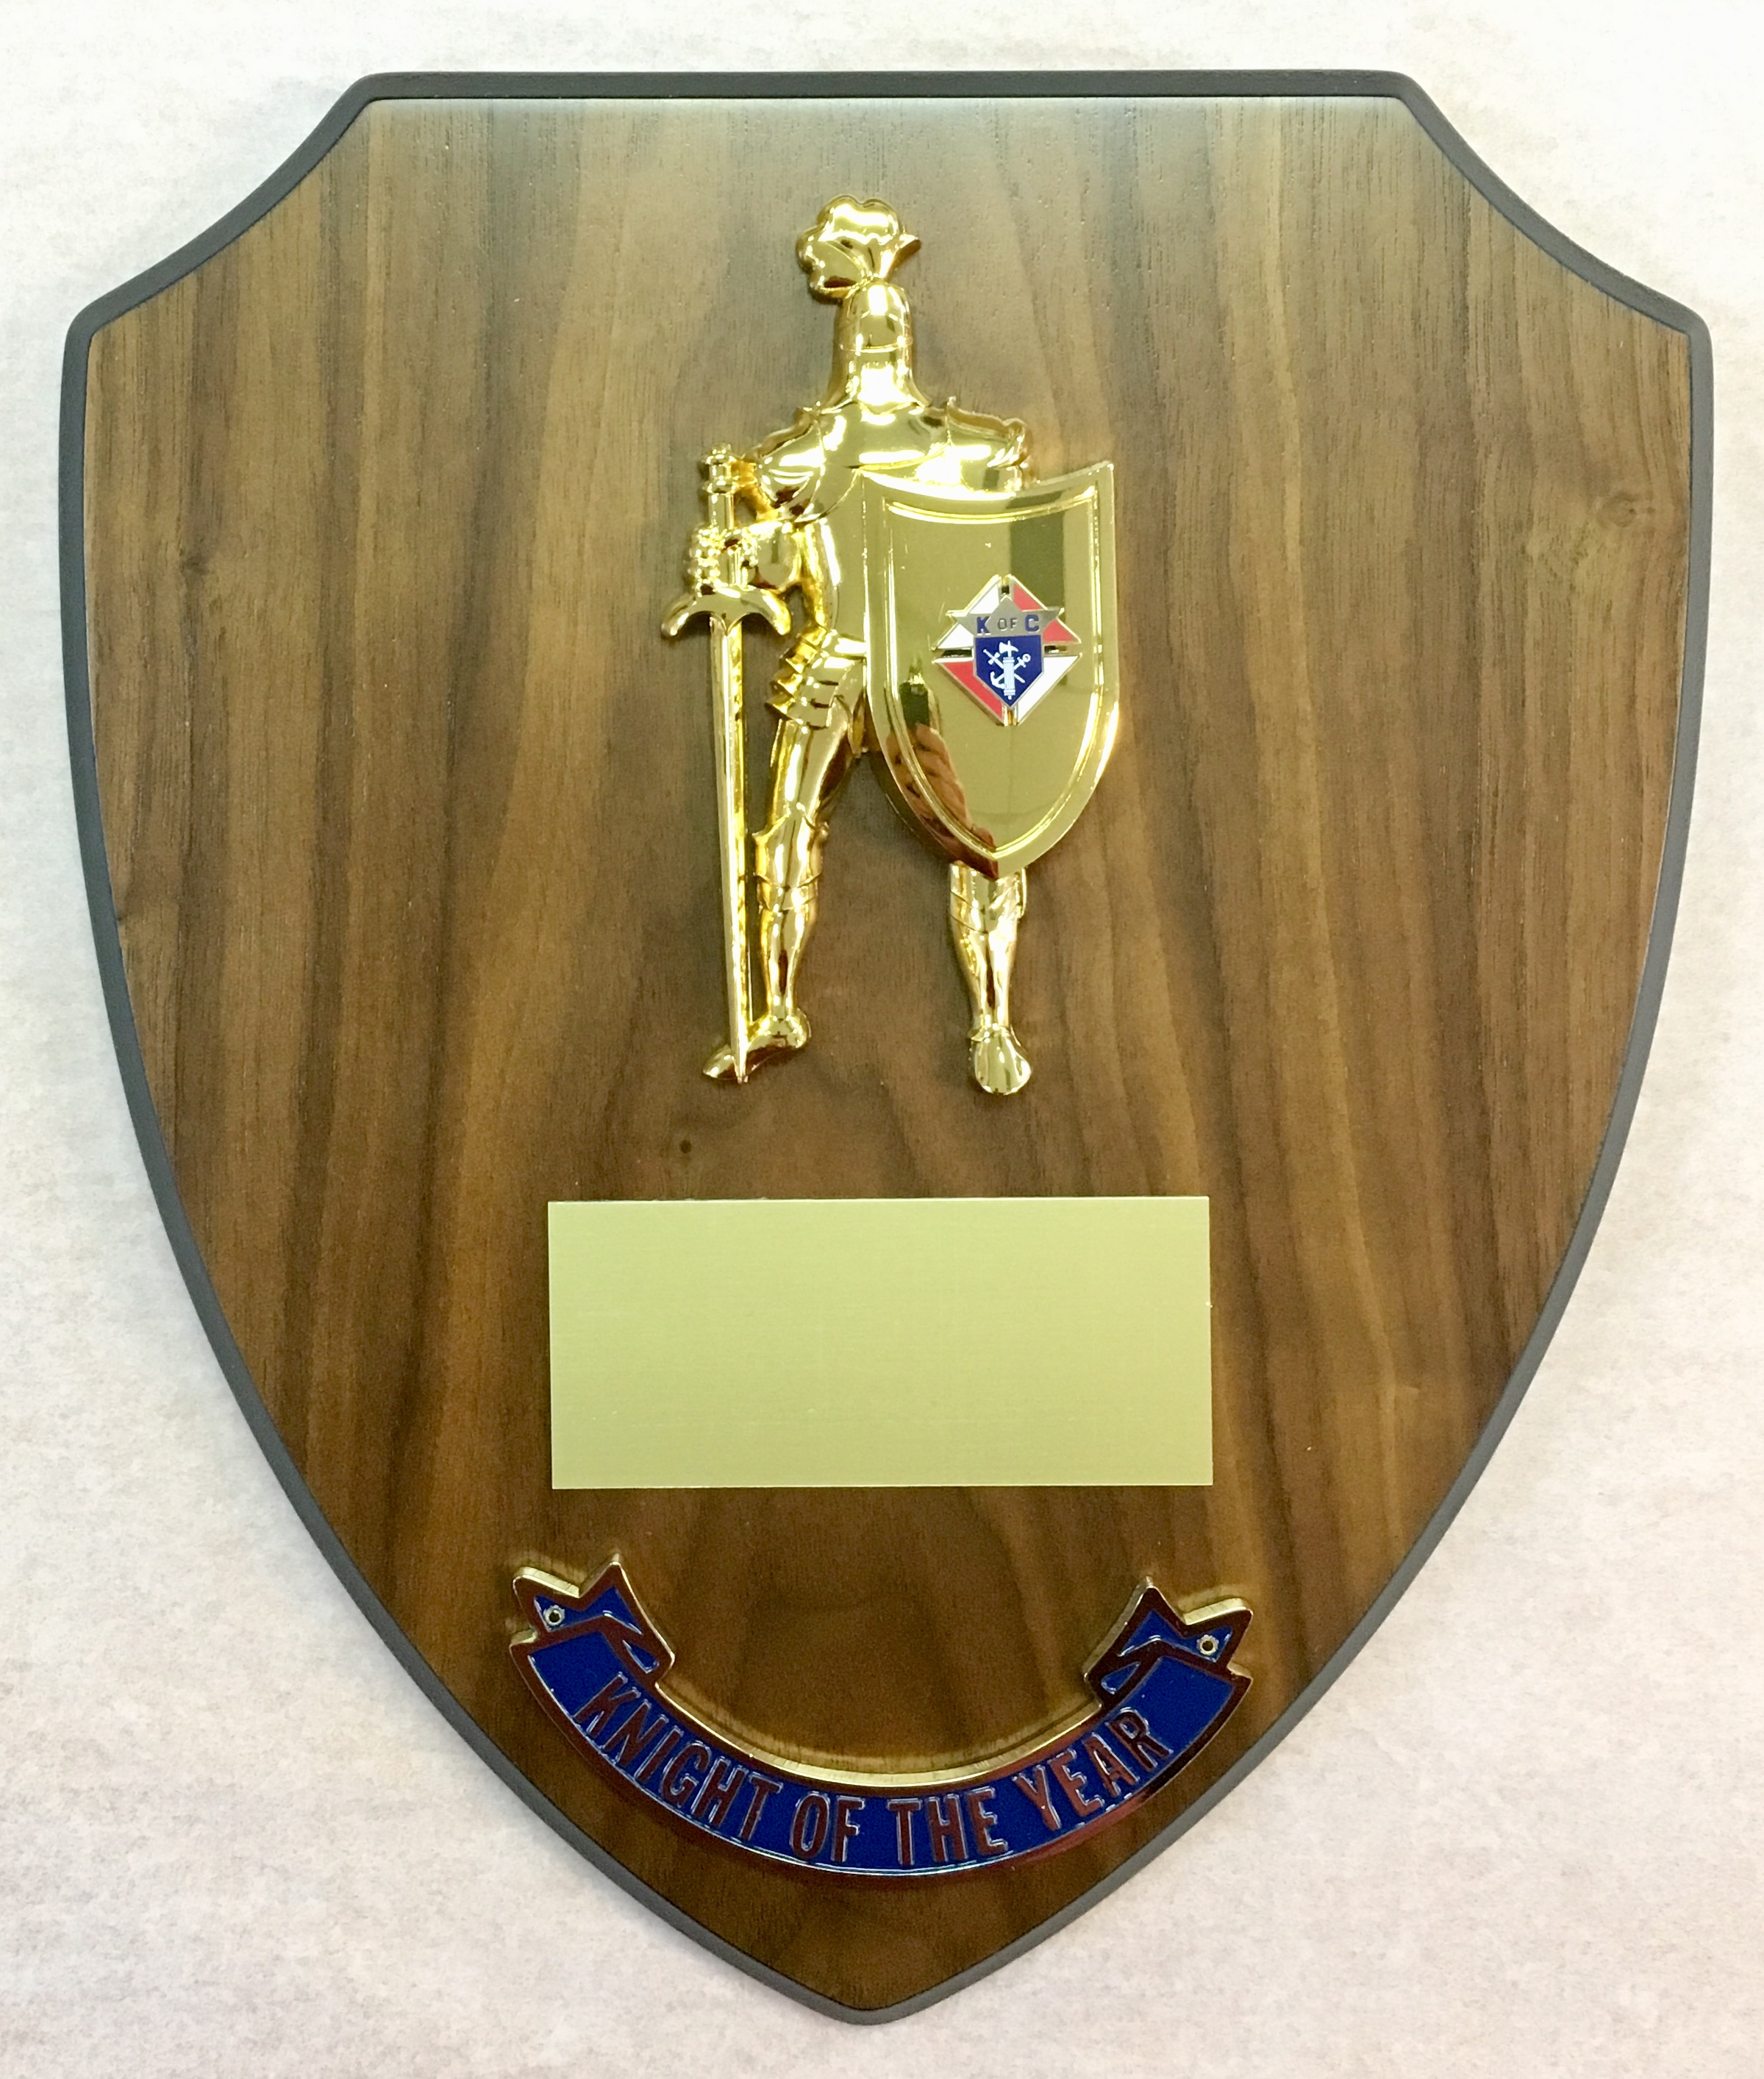 P-2B - Knight of the Year Plaque